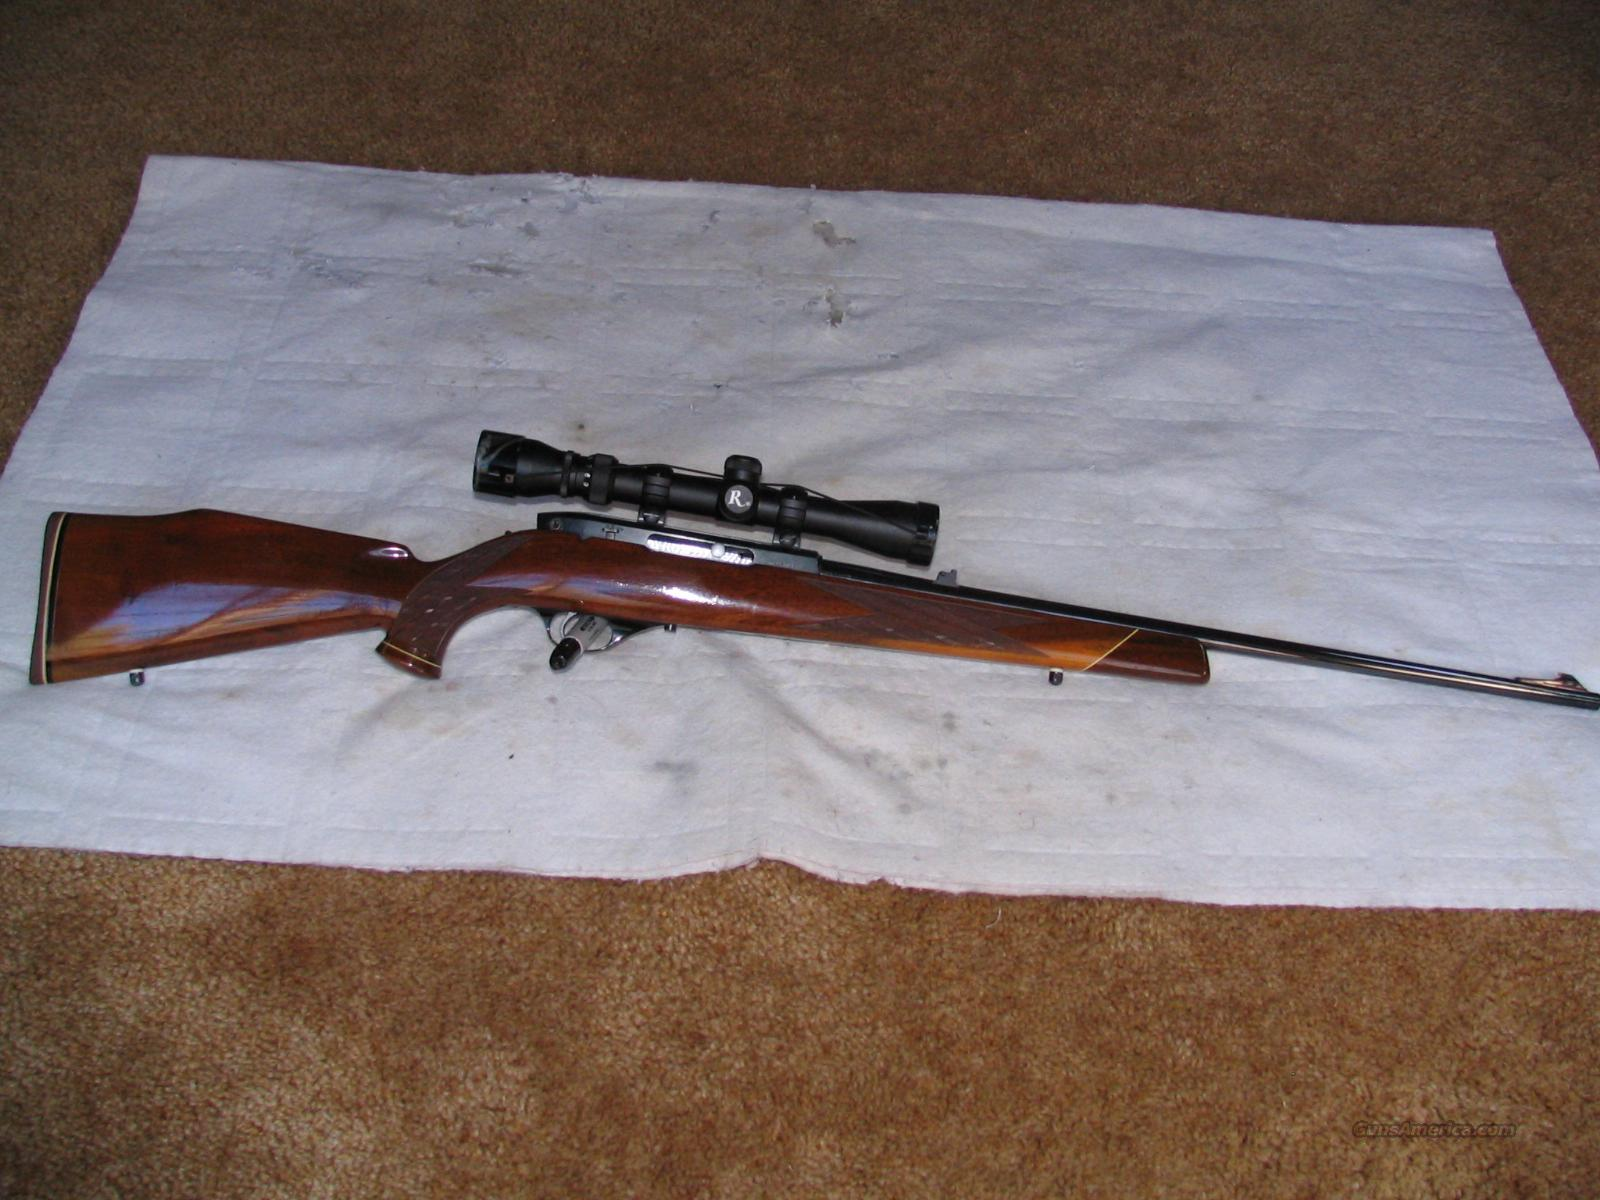 Weatherby Mark xxii deluxe semi-auto 22lr  Guns > Rifles > Weatherby Rifles > Sporting